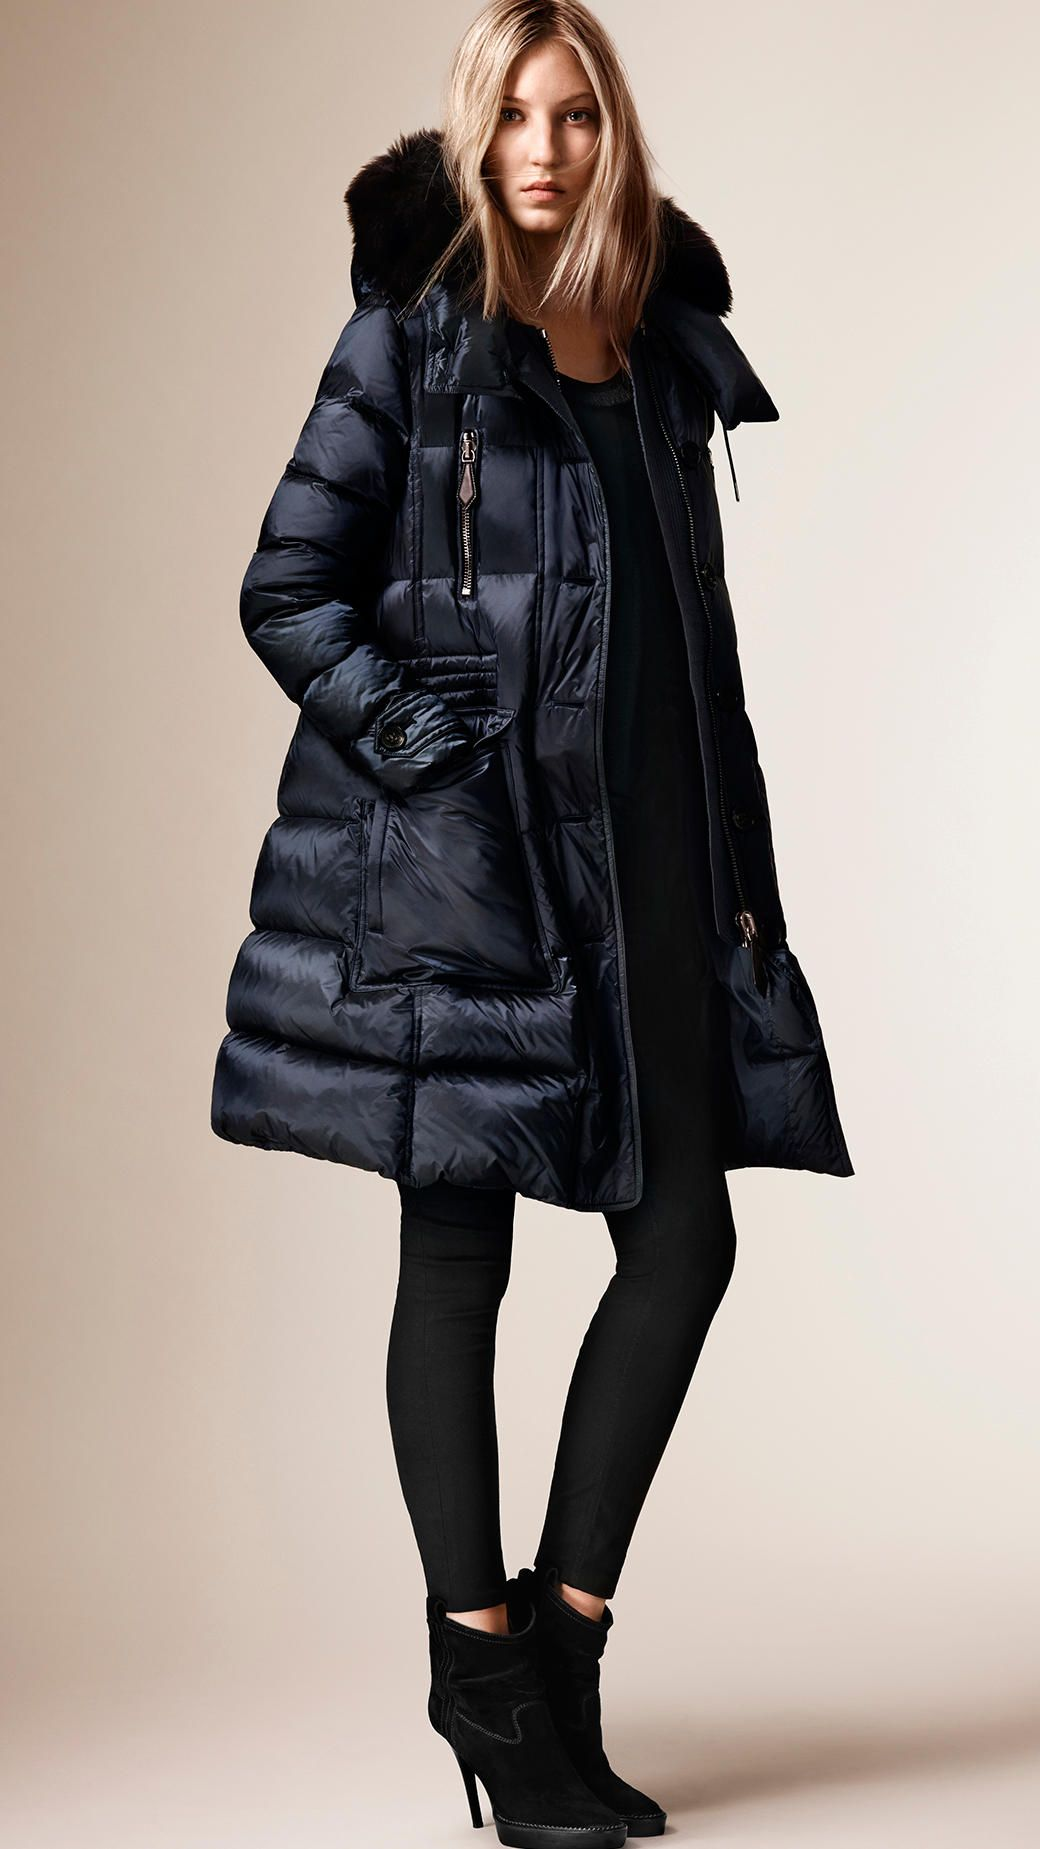 A showerproof downfilled puffer coat with a detachable